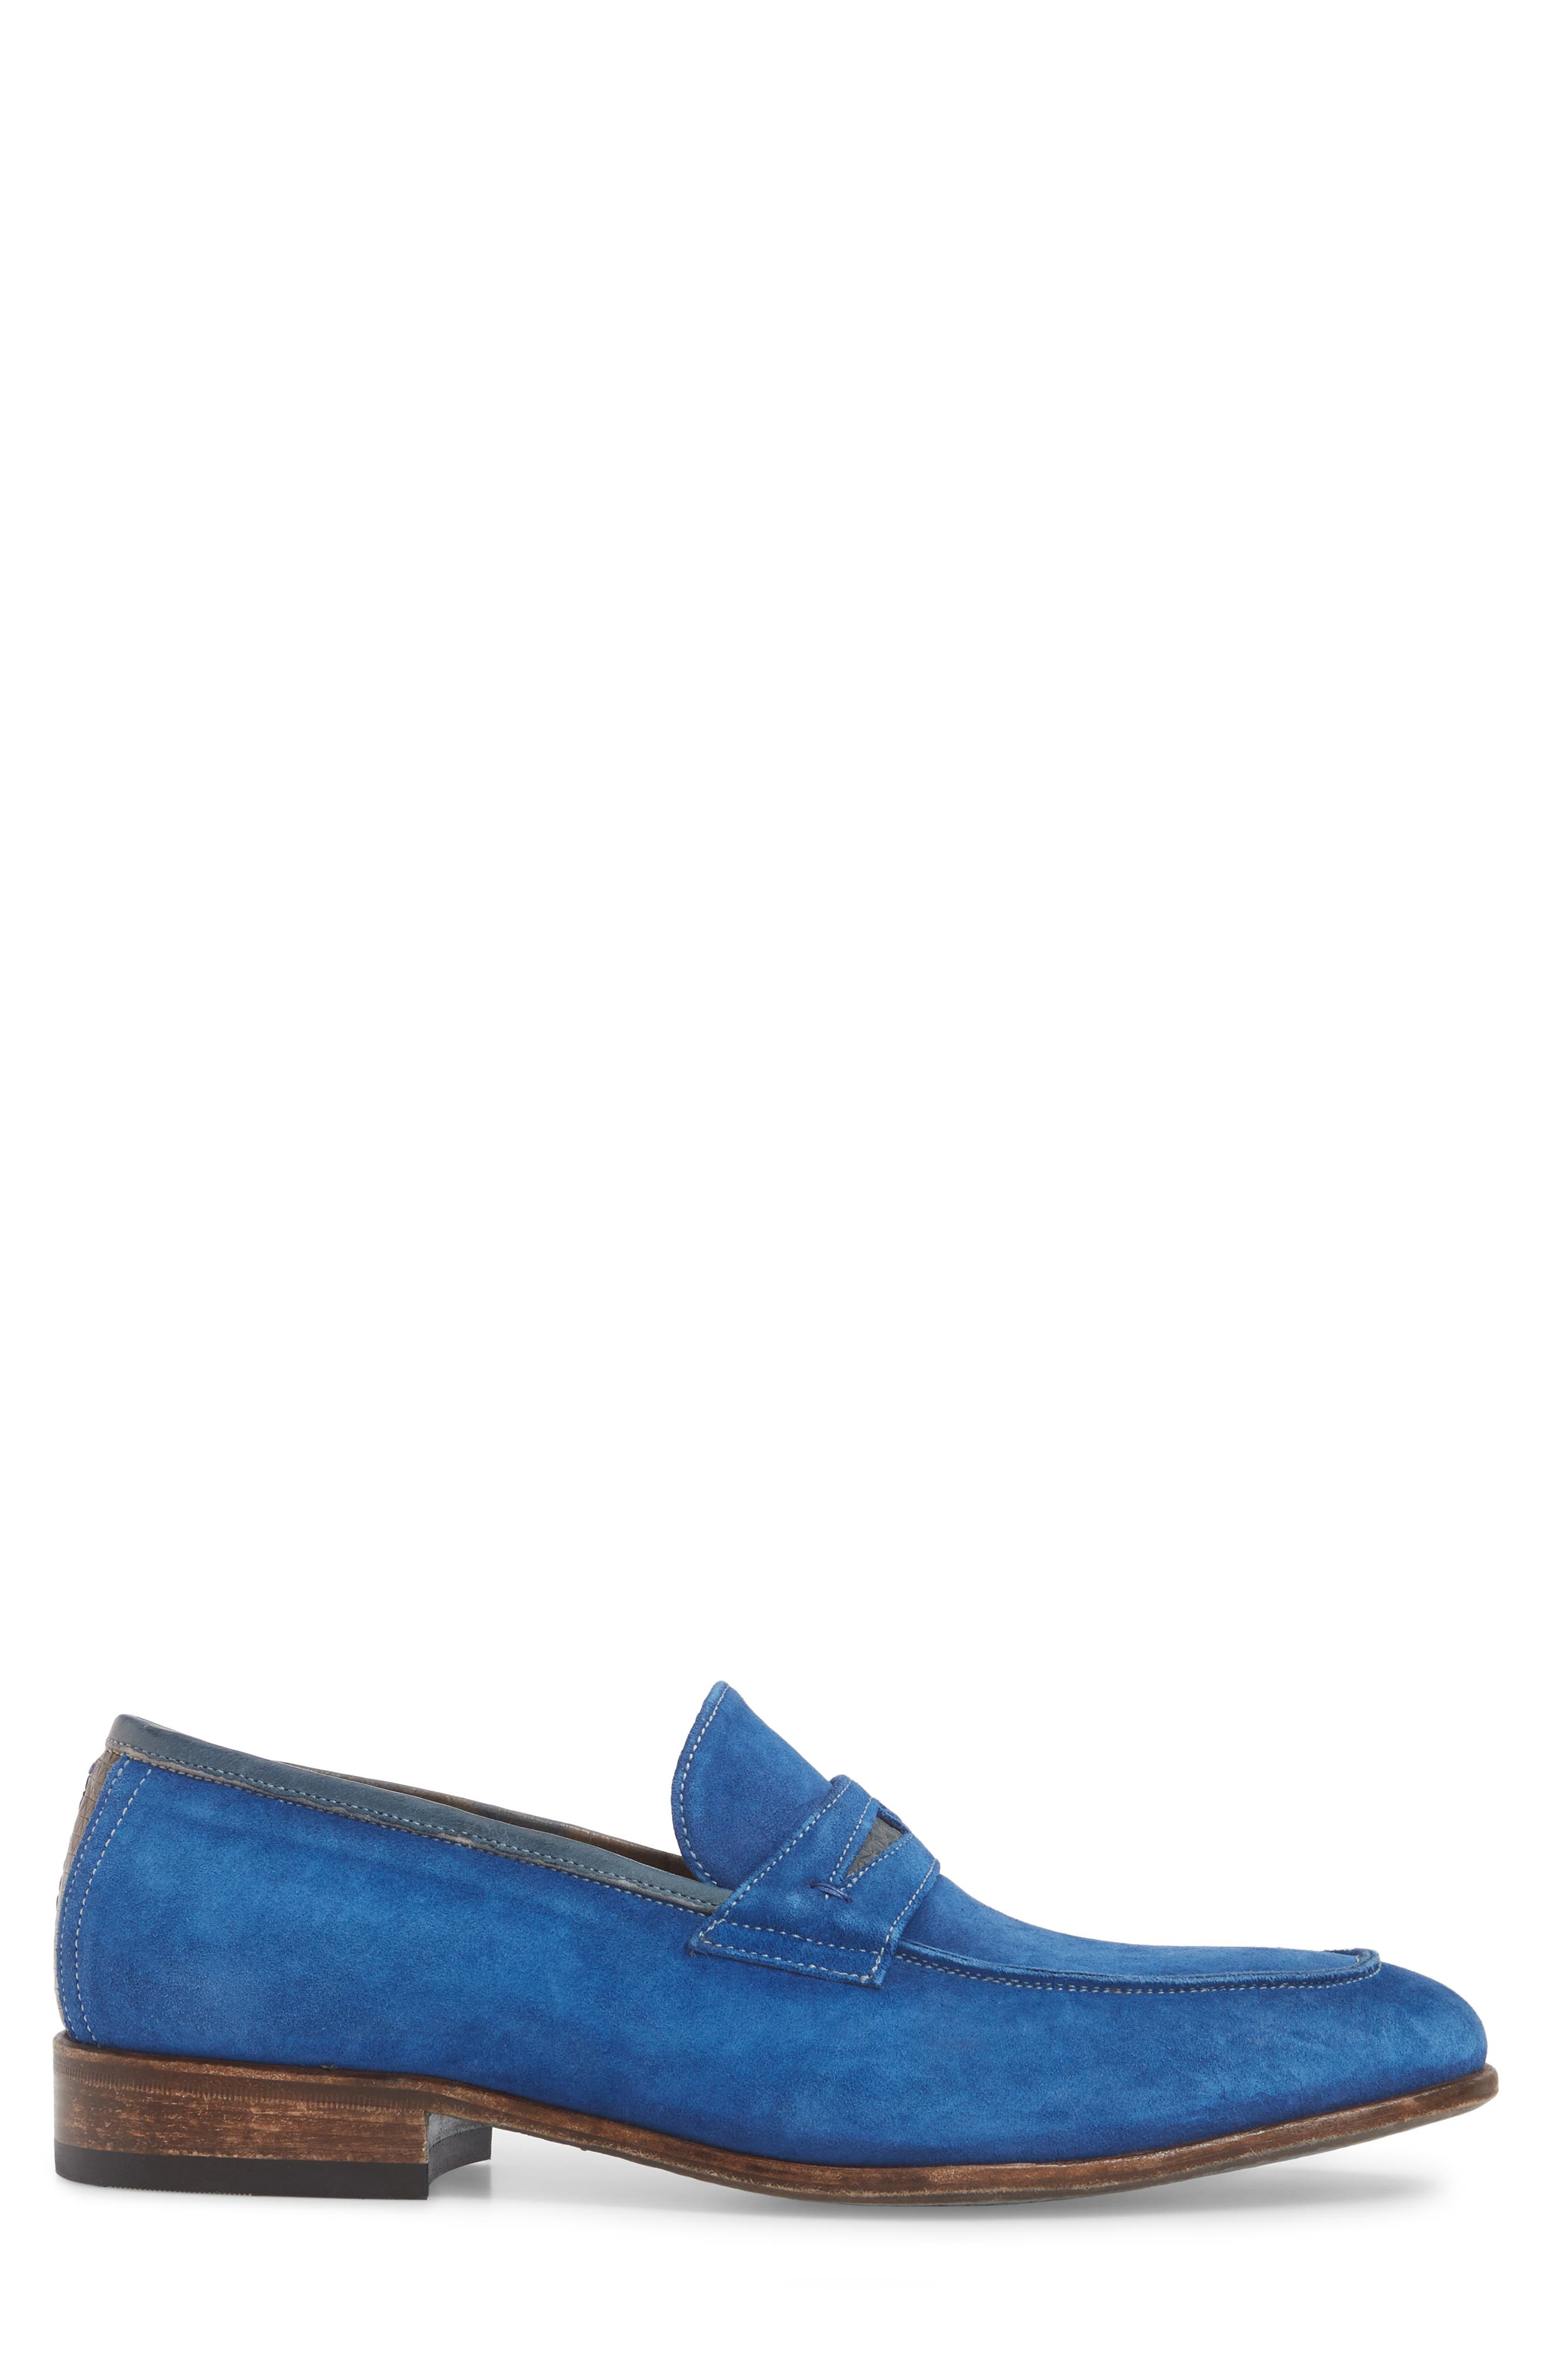 Lex Apron Toe Penny Loafer,                             Alternate thumbnail 6, color,